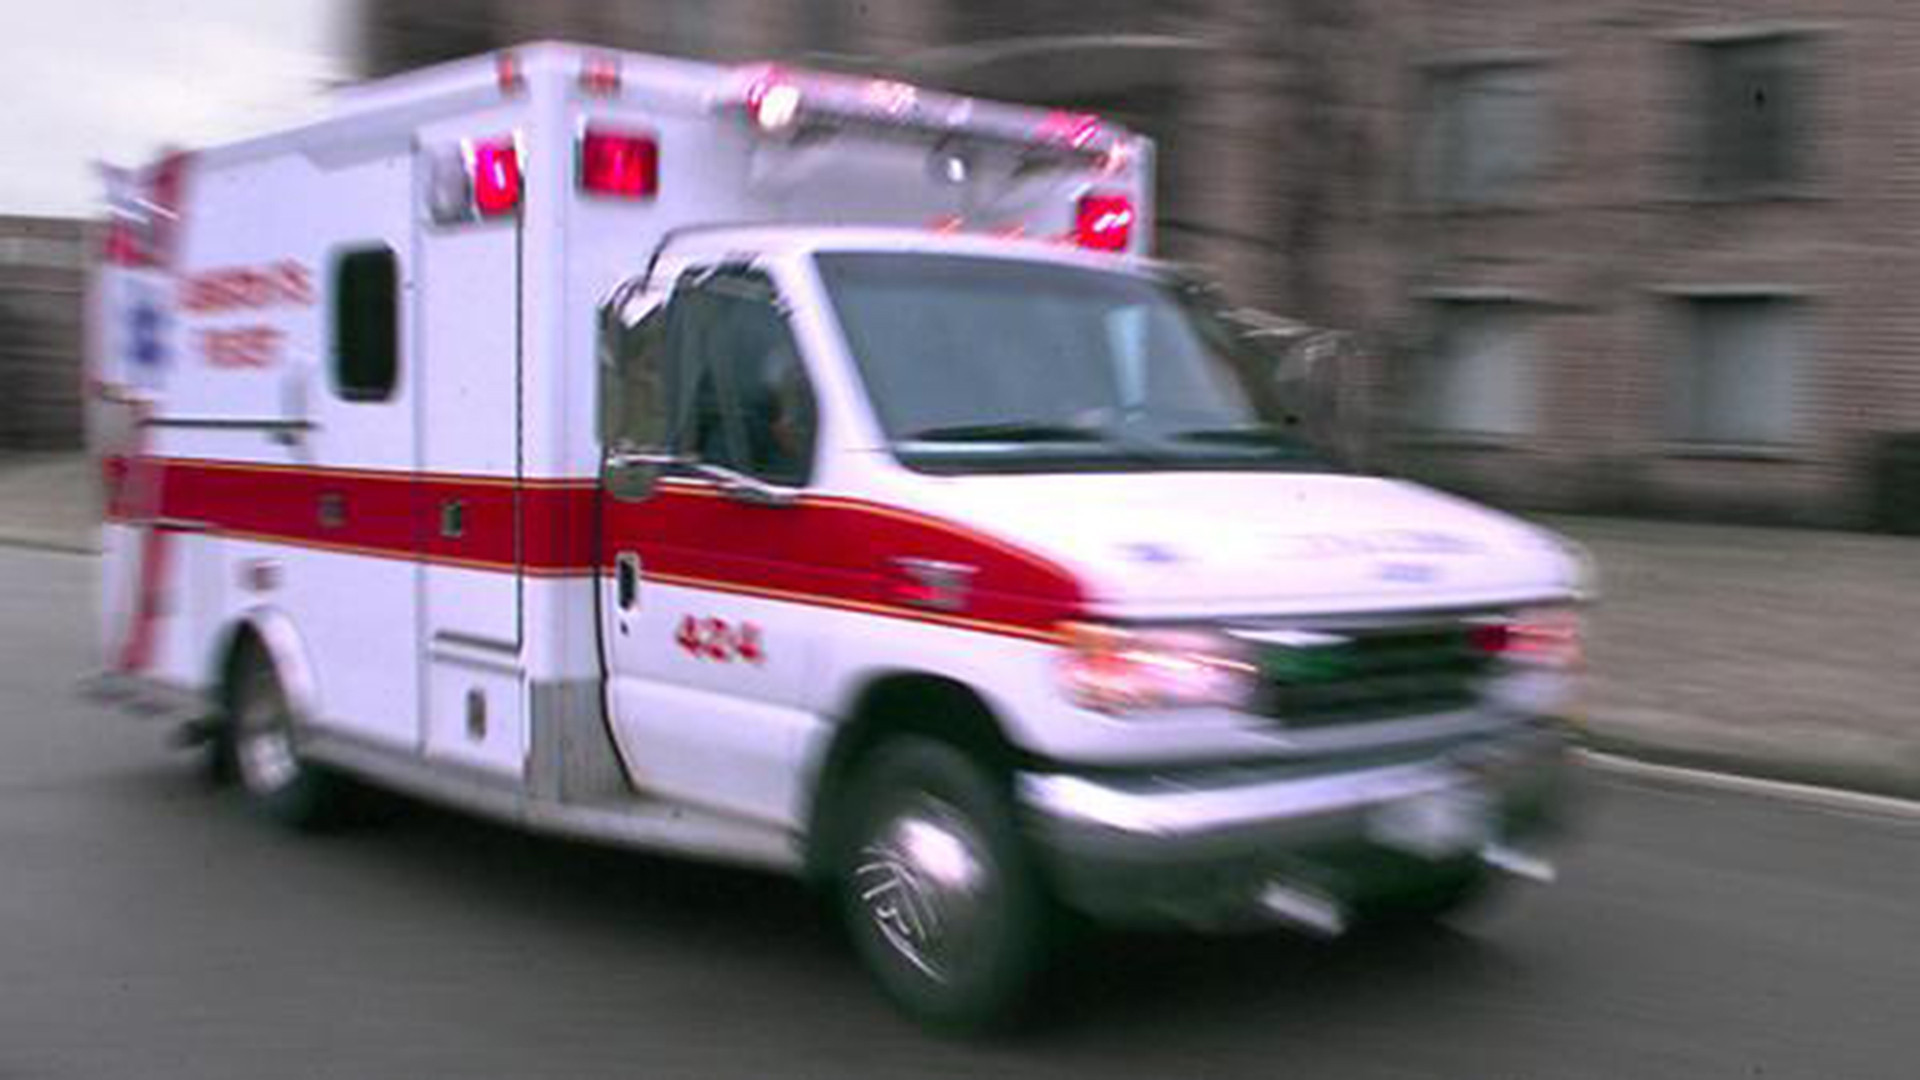 Bicyclist critical after being hit by 2 trains in Garfield Ridge - Chicago Tribune